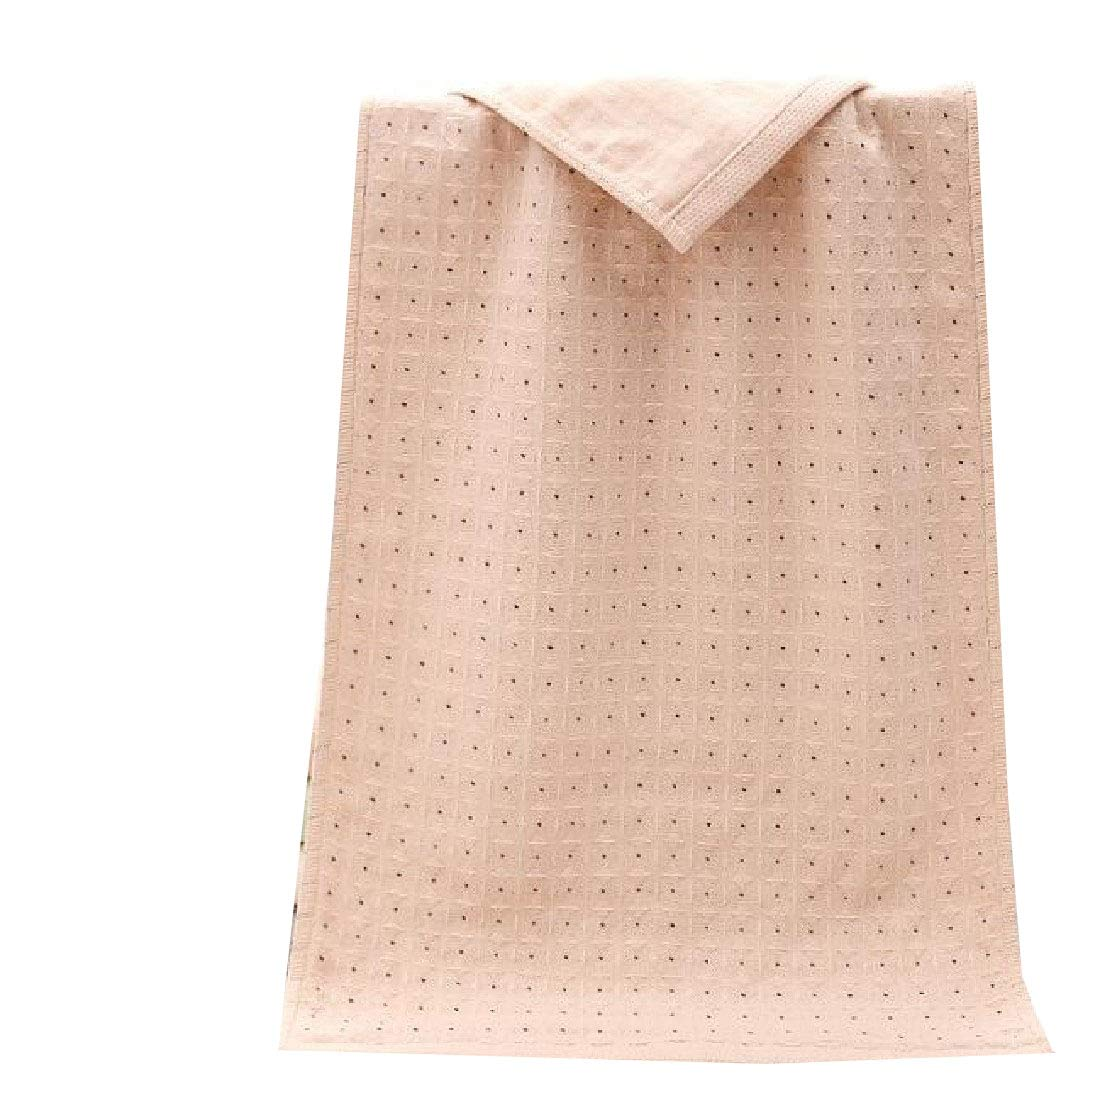 Andopa Cotton Ideal for Everyday use Sheer Superfine Fiber Soft Skin-Friendly Classic Bath Towels Yellow 3472cm